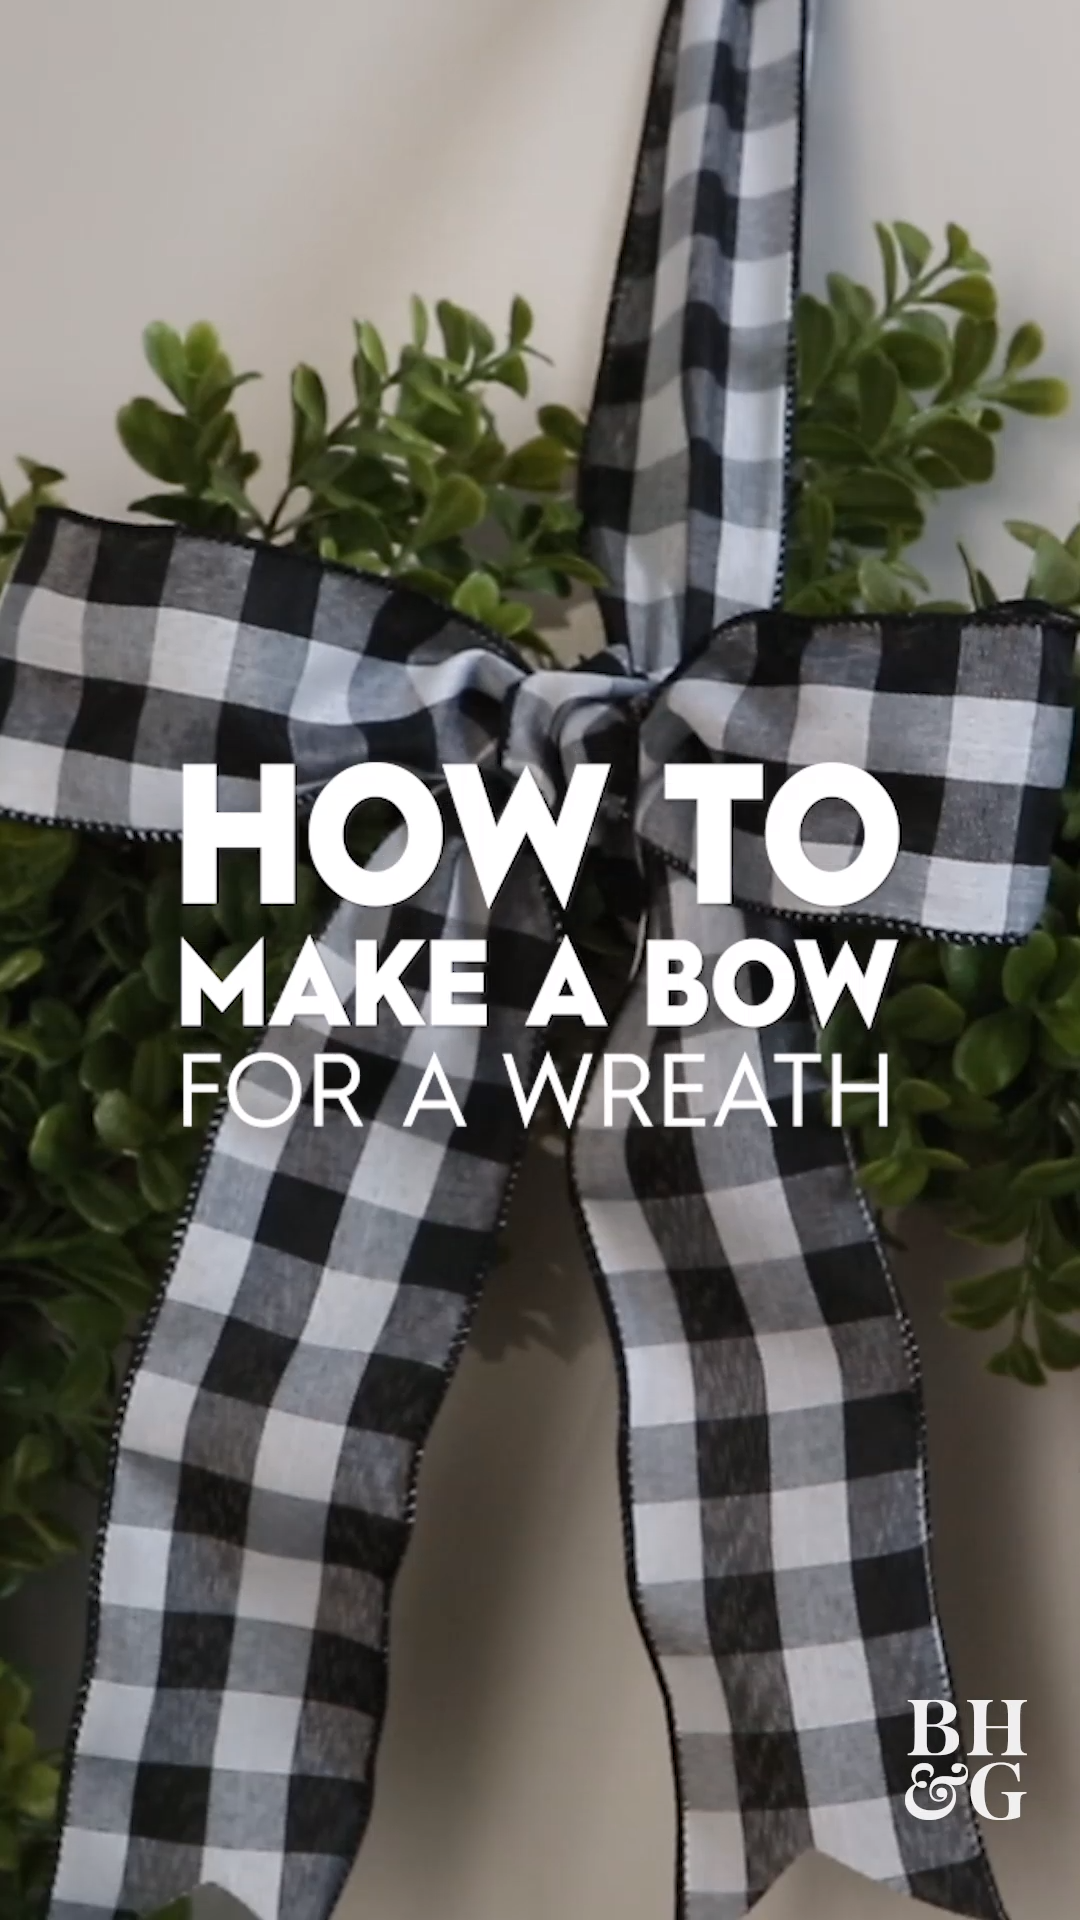 How to Make a Bow for a Wreath in 3 Easy Steps  #howtomakeabowwithribbon